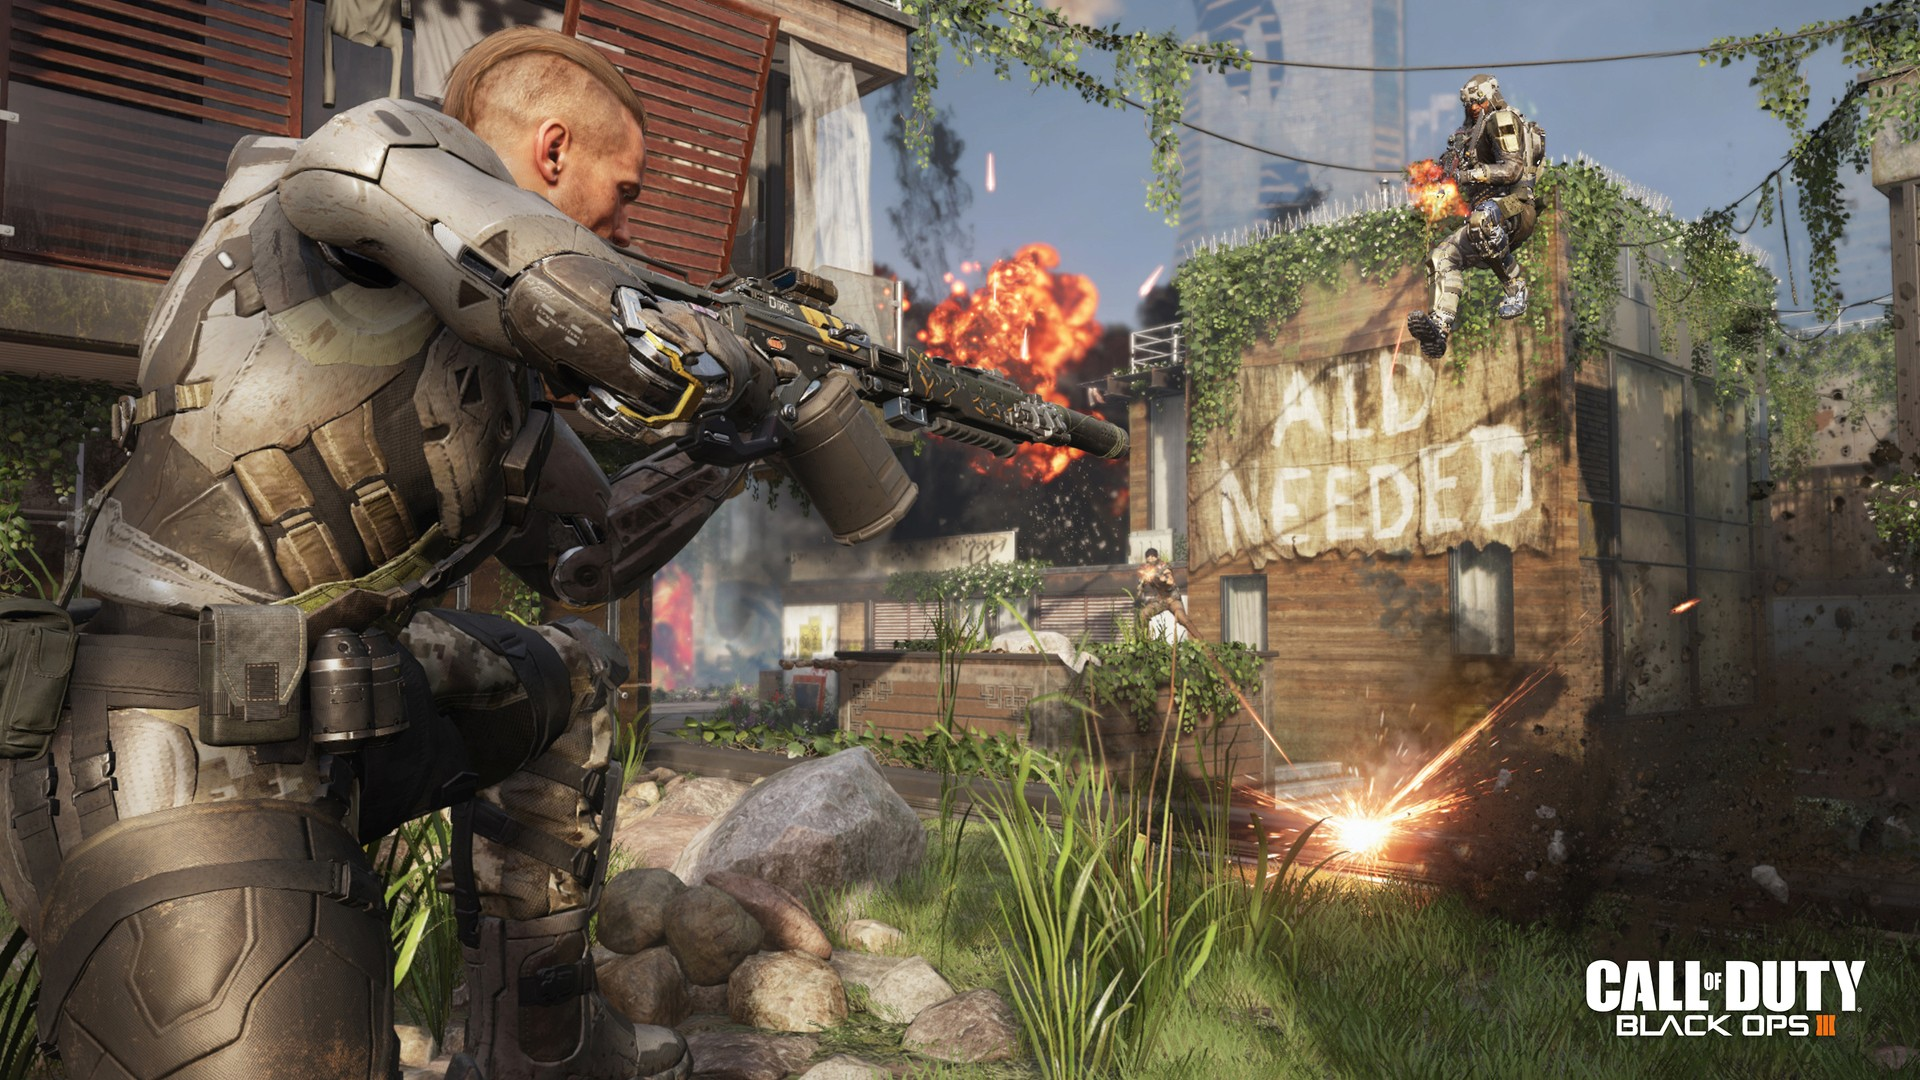 Call Of Duty Black Ops 3 Is A Surprise Free Playstation Plus Game This Month Techradar